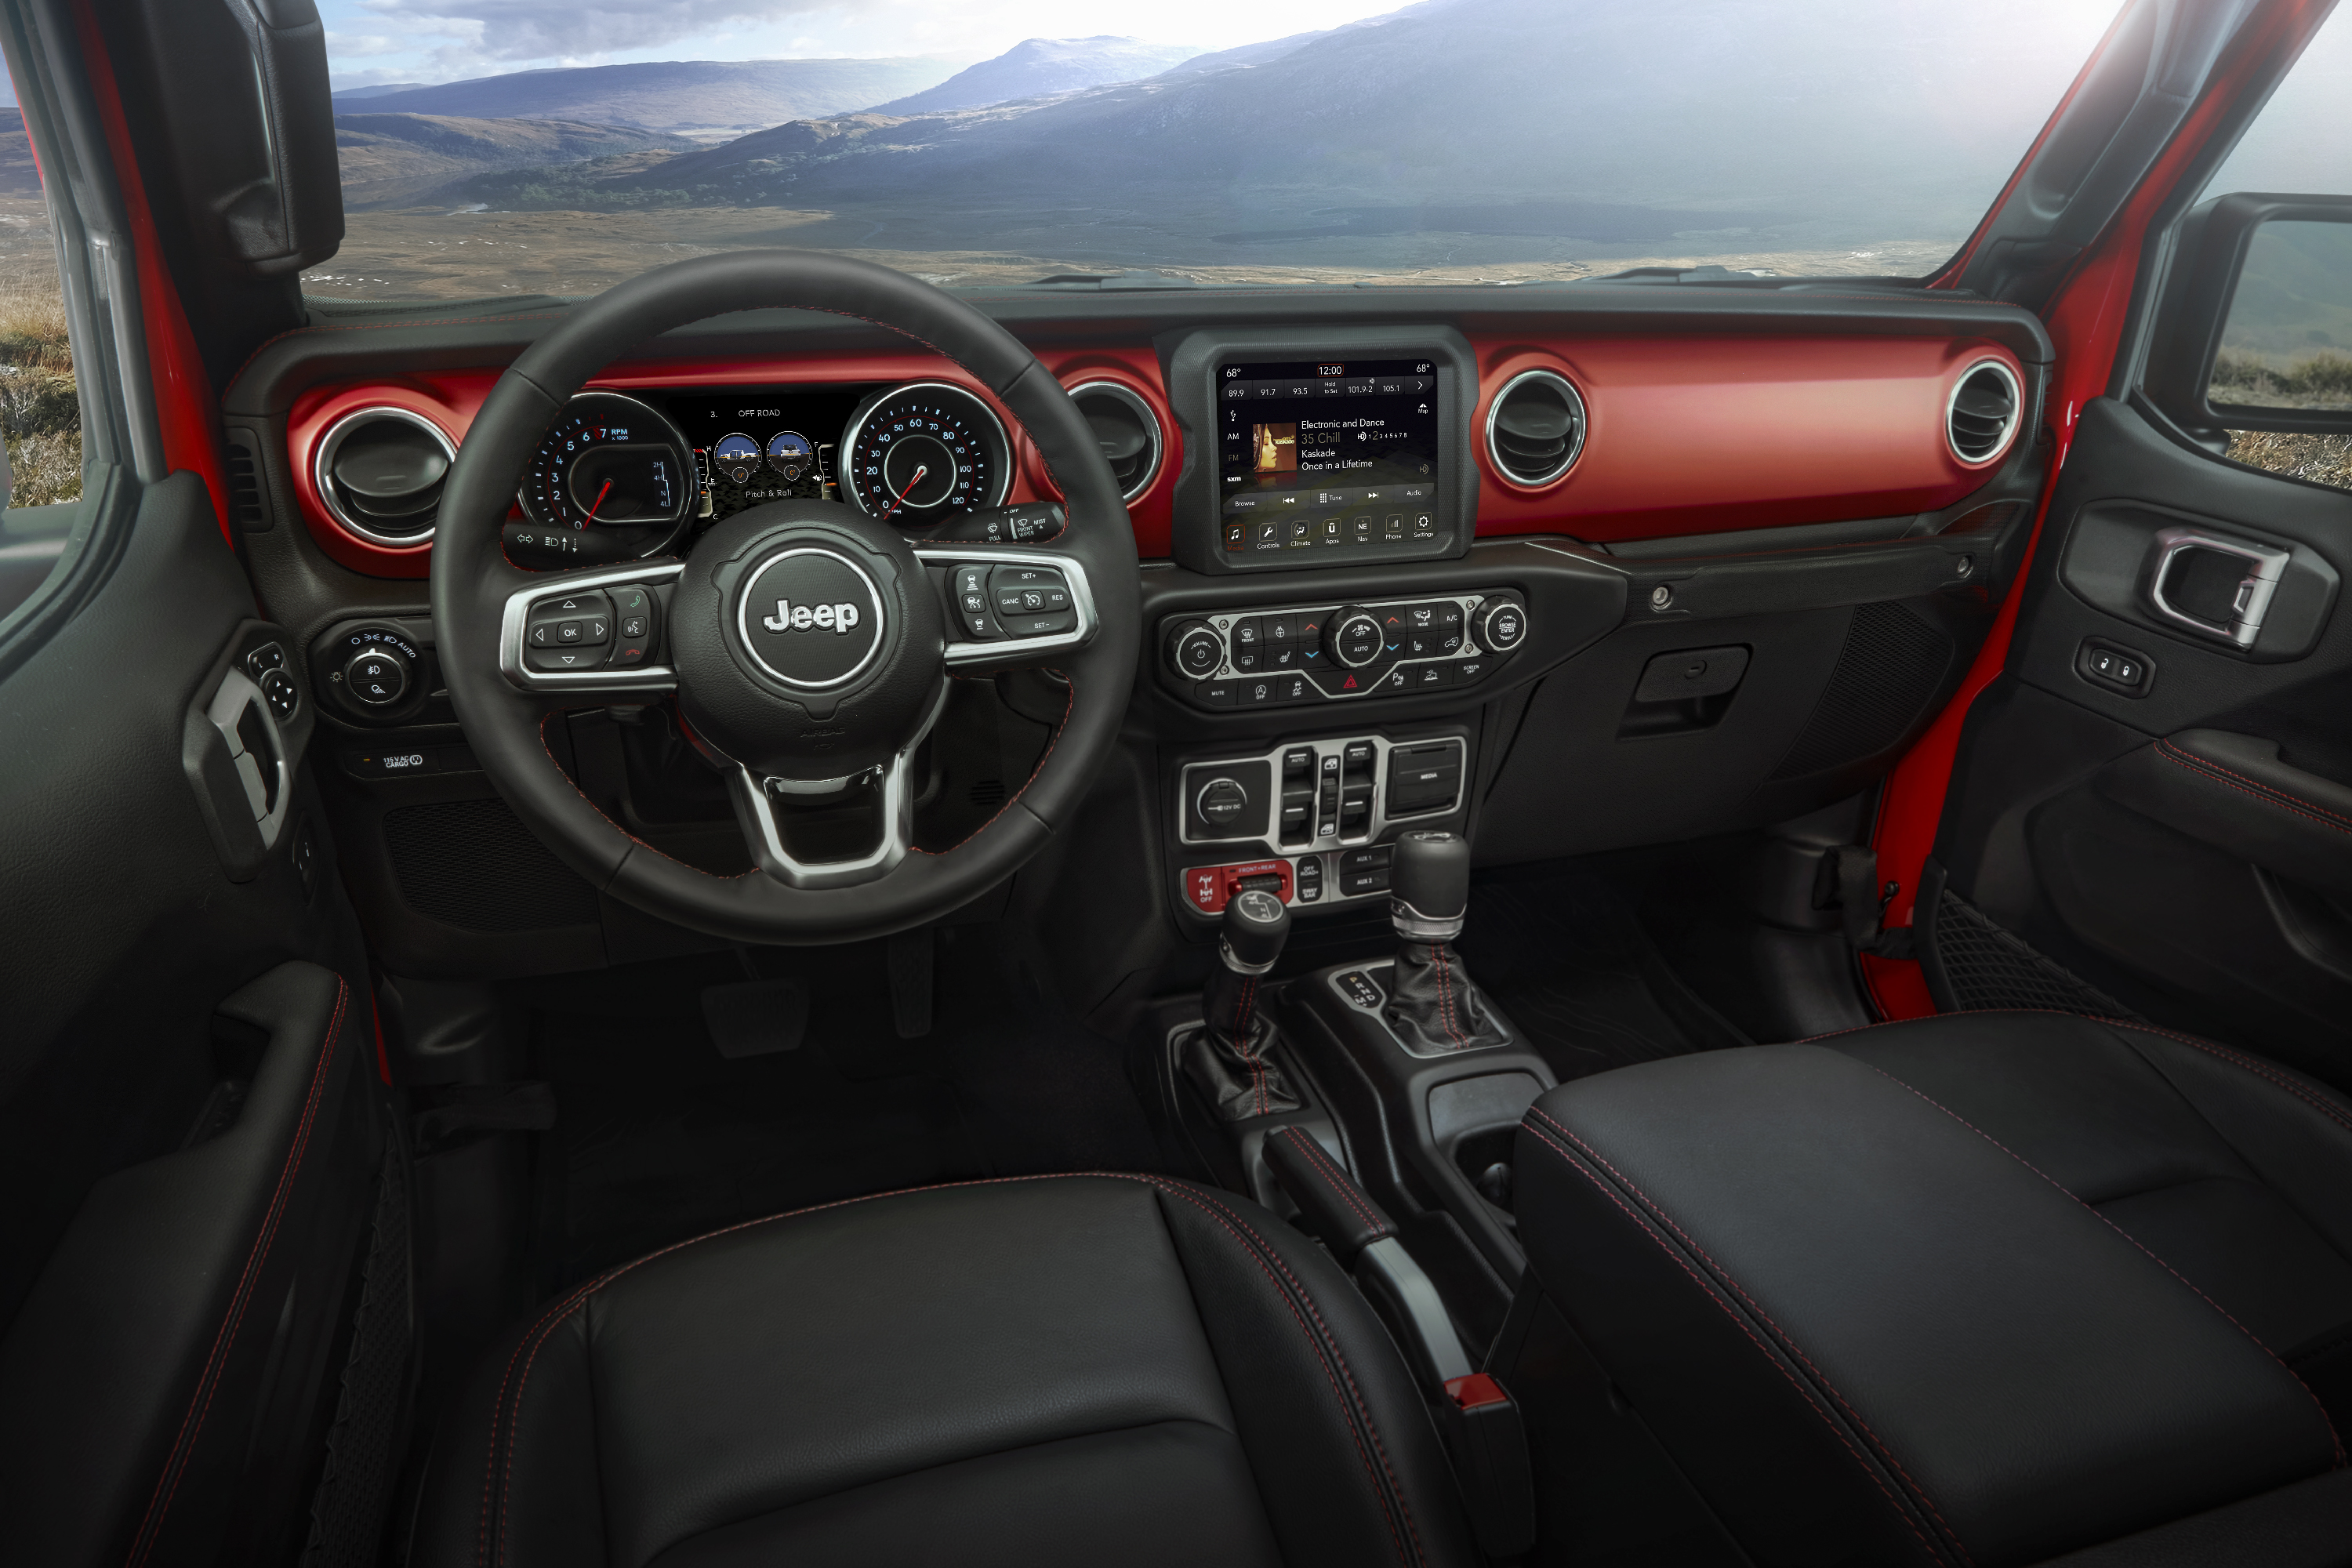 2020 Jeep® Gladiator – interior - Peppers Automotive Group